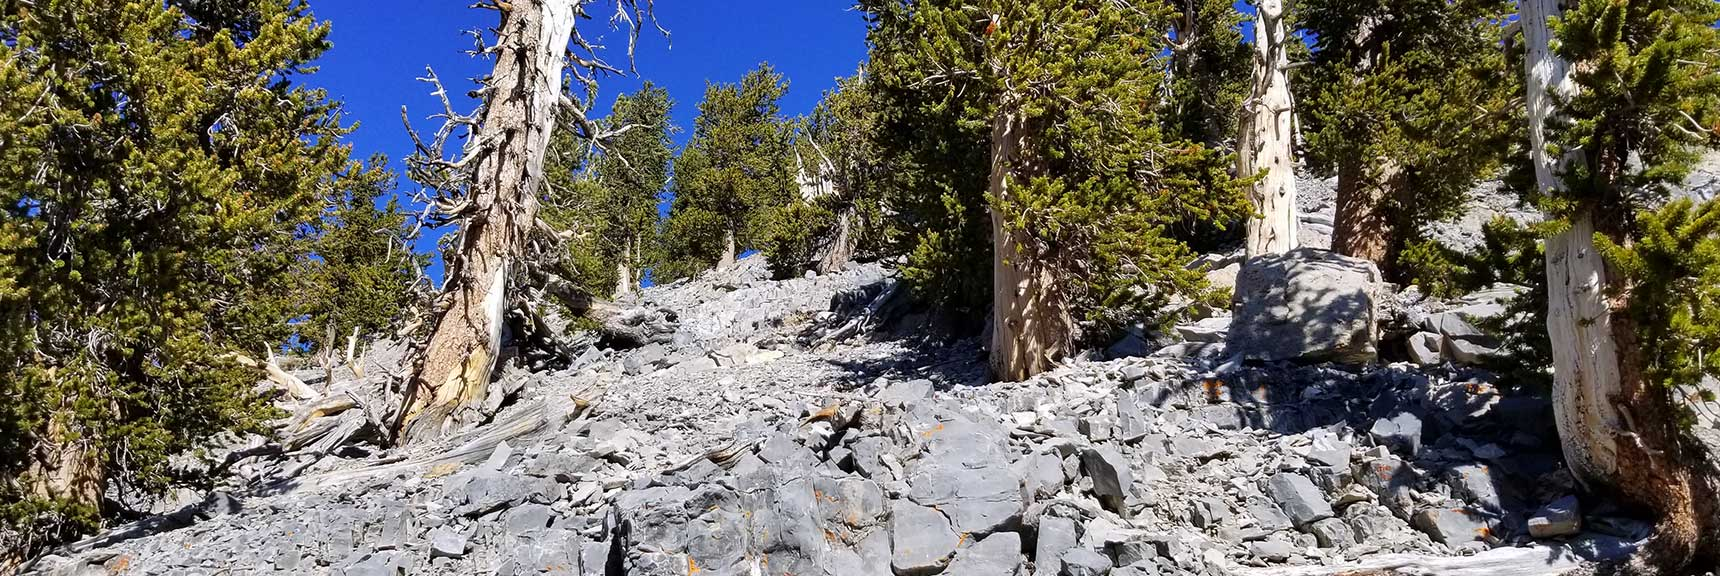 Looking up Lower Approach Route to Lee Peak in Kyle Canyon, Spring Mountains, Nevada Slide 001